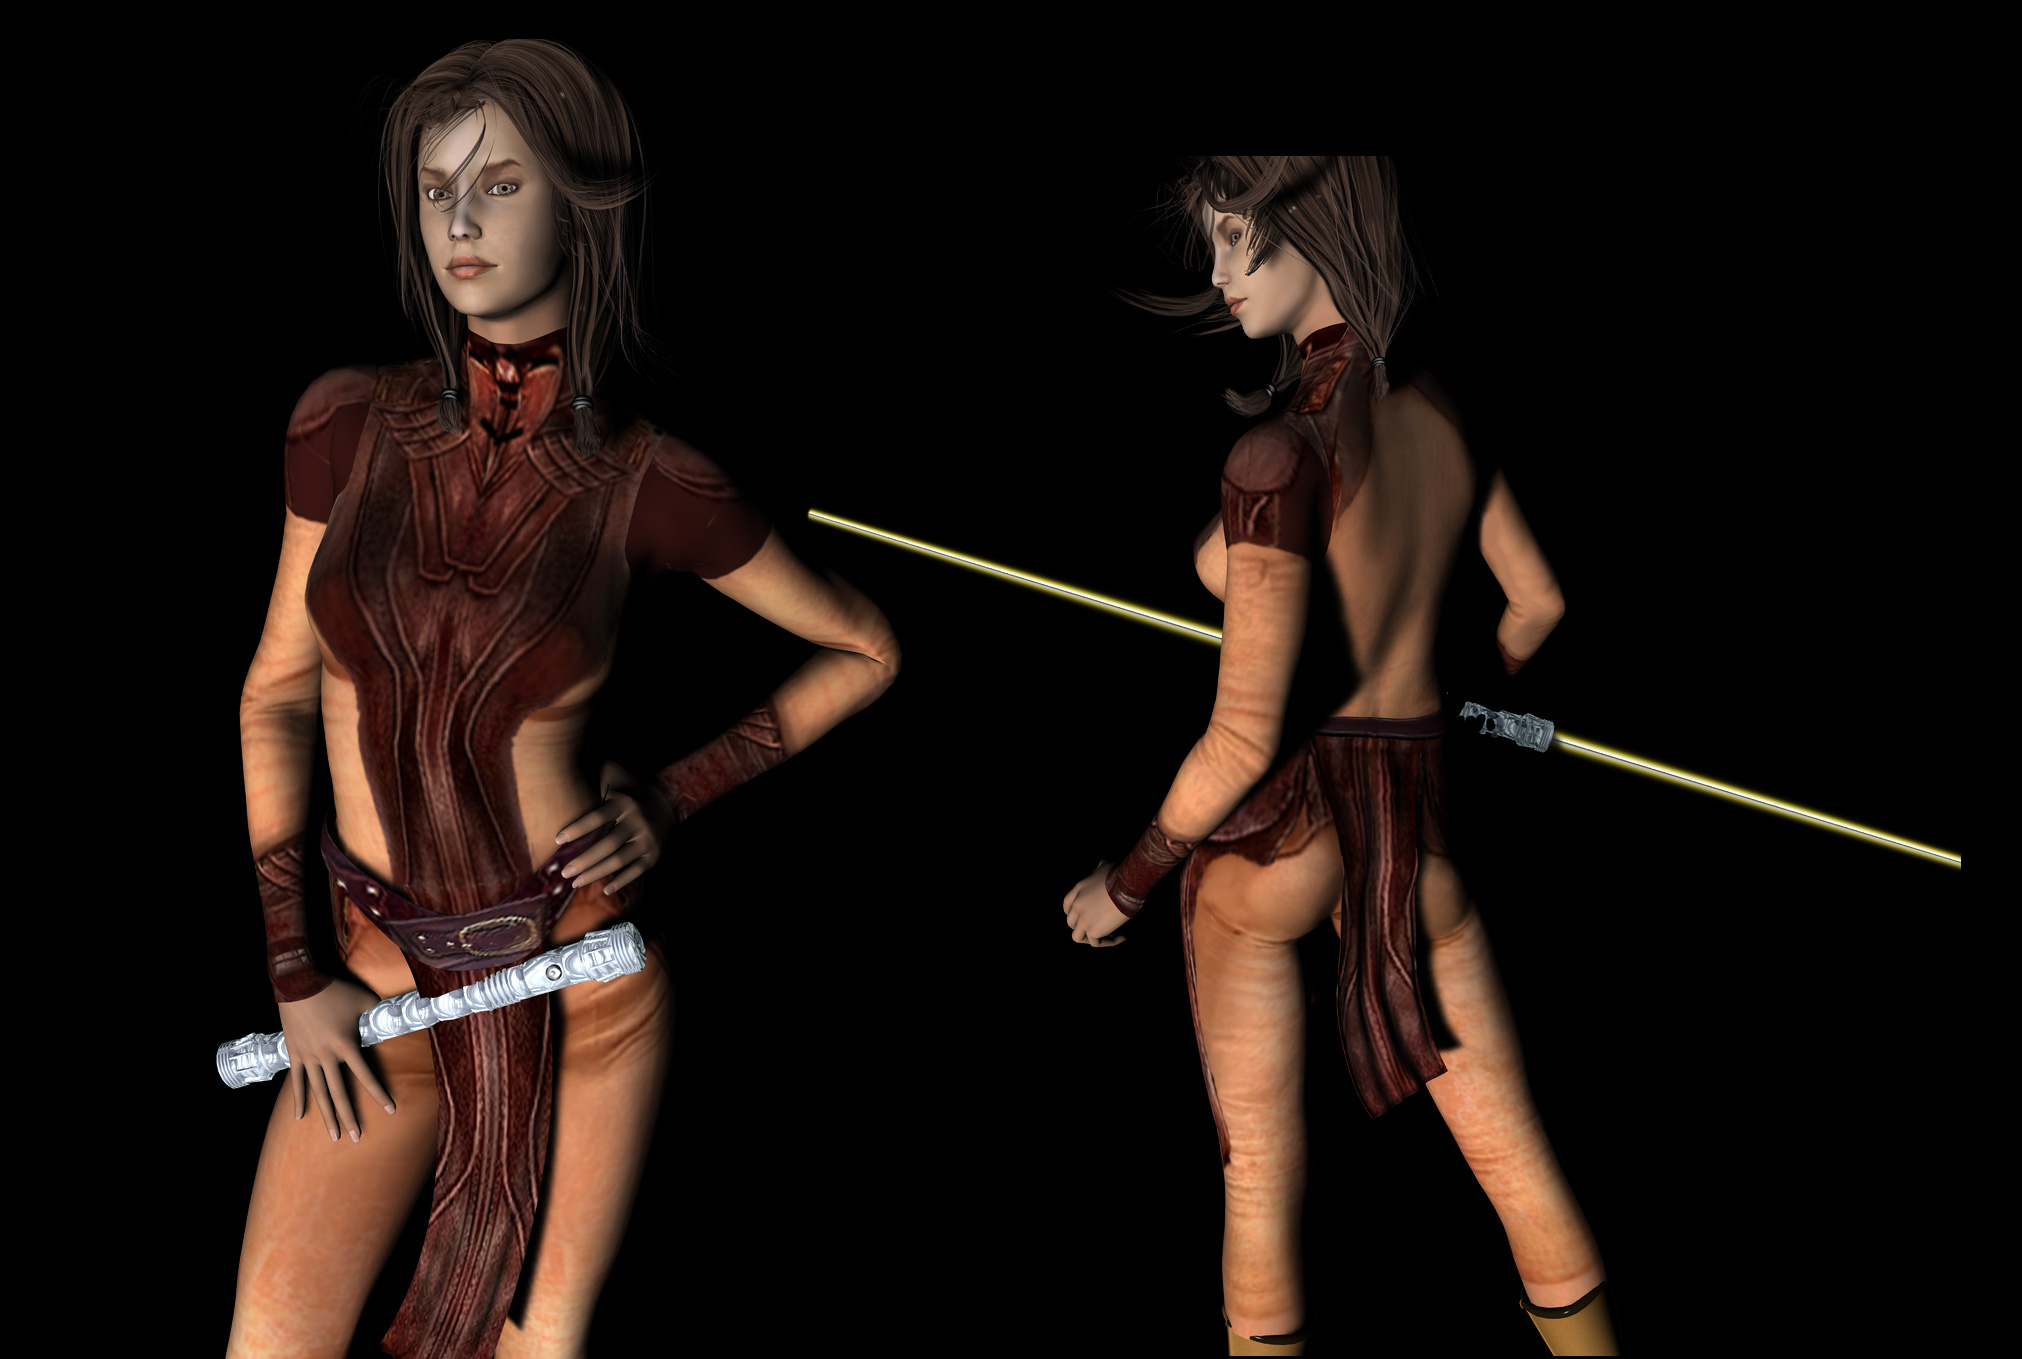 Nude mod for kotor 2 for pc fucked comic